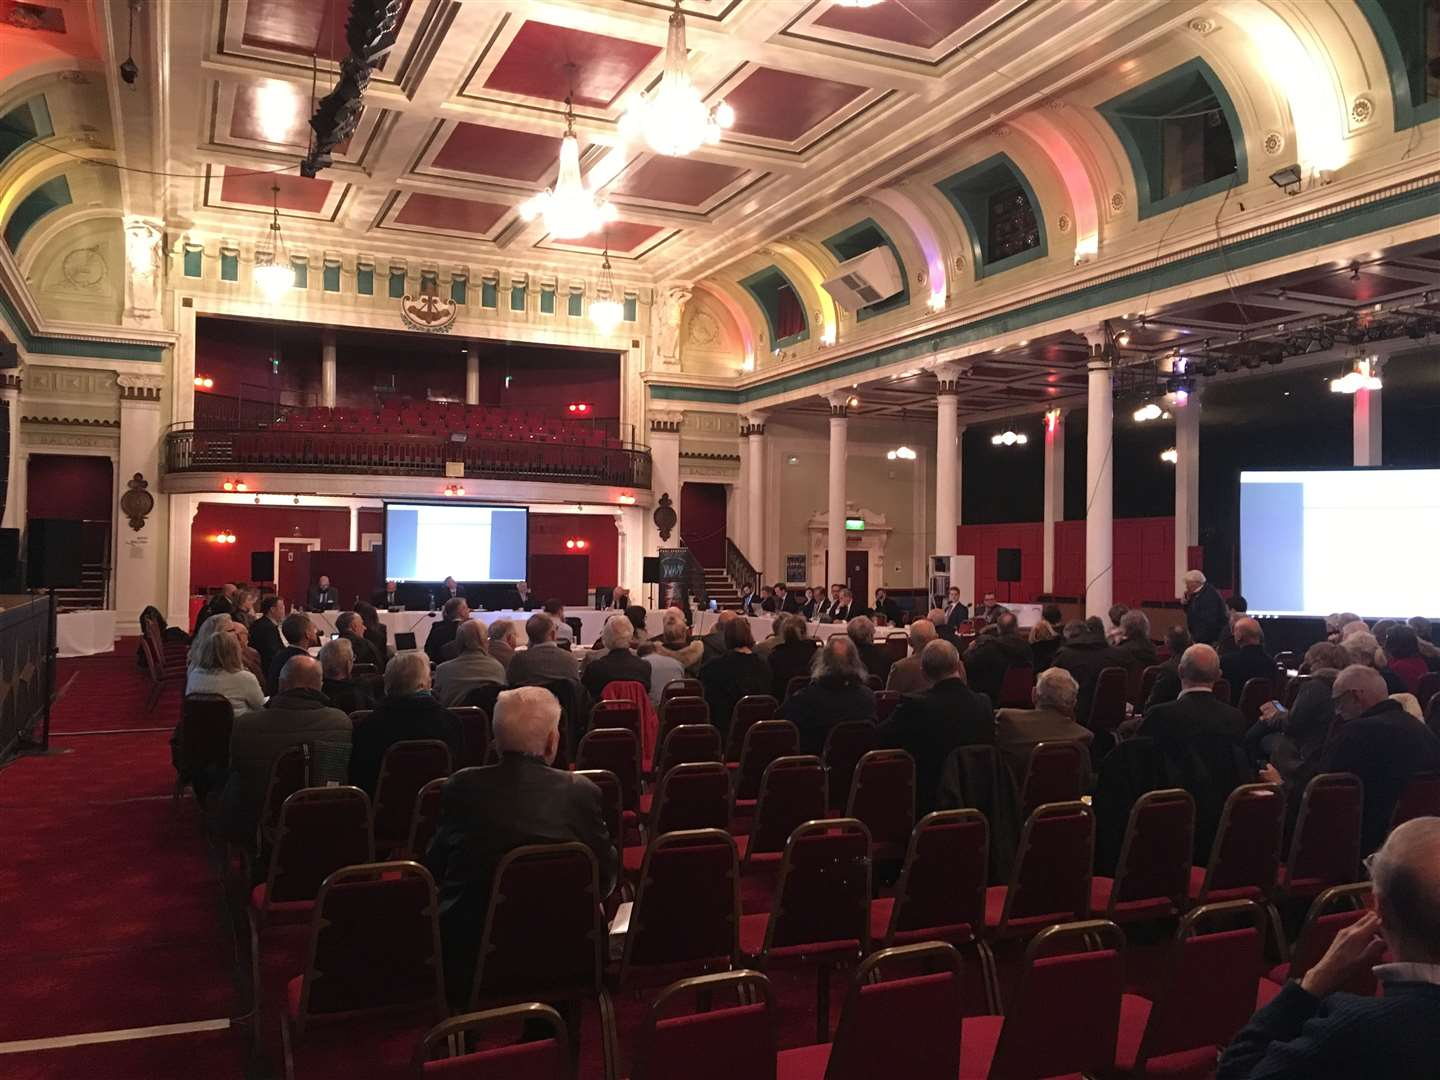 Around 150 people attended the outline hearing setting out the future of Manston Airport on January 9 at the Margate Winter Gardens